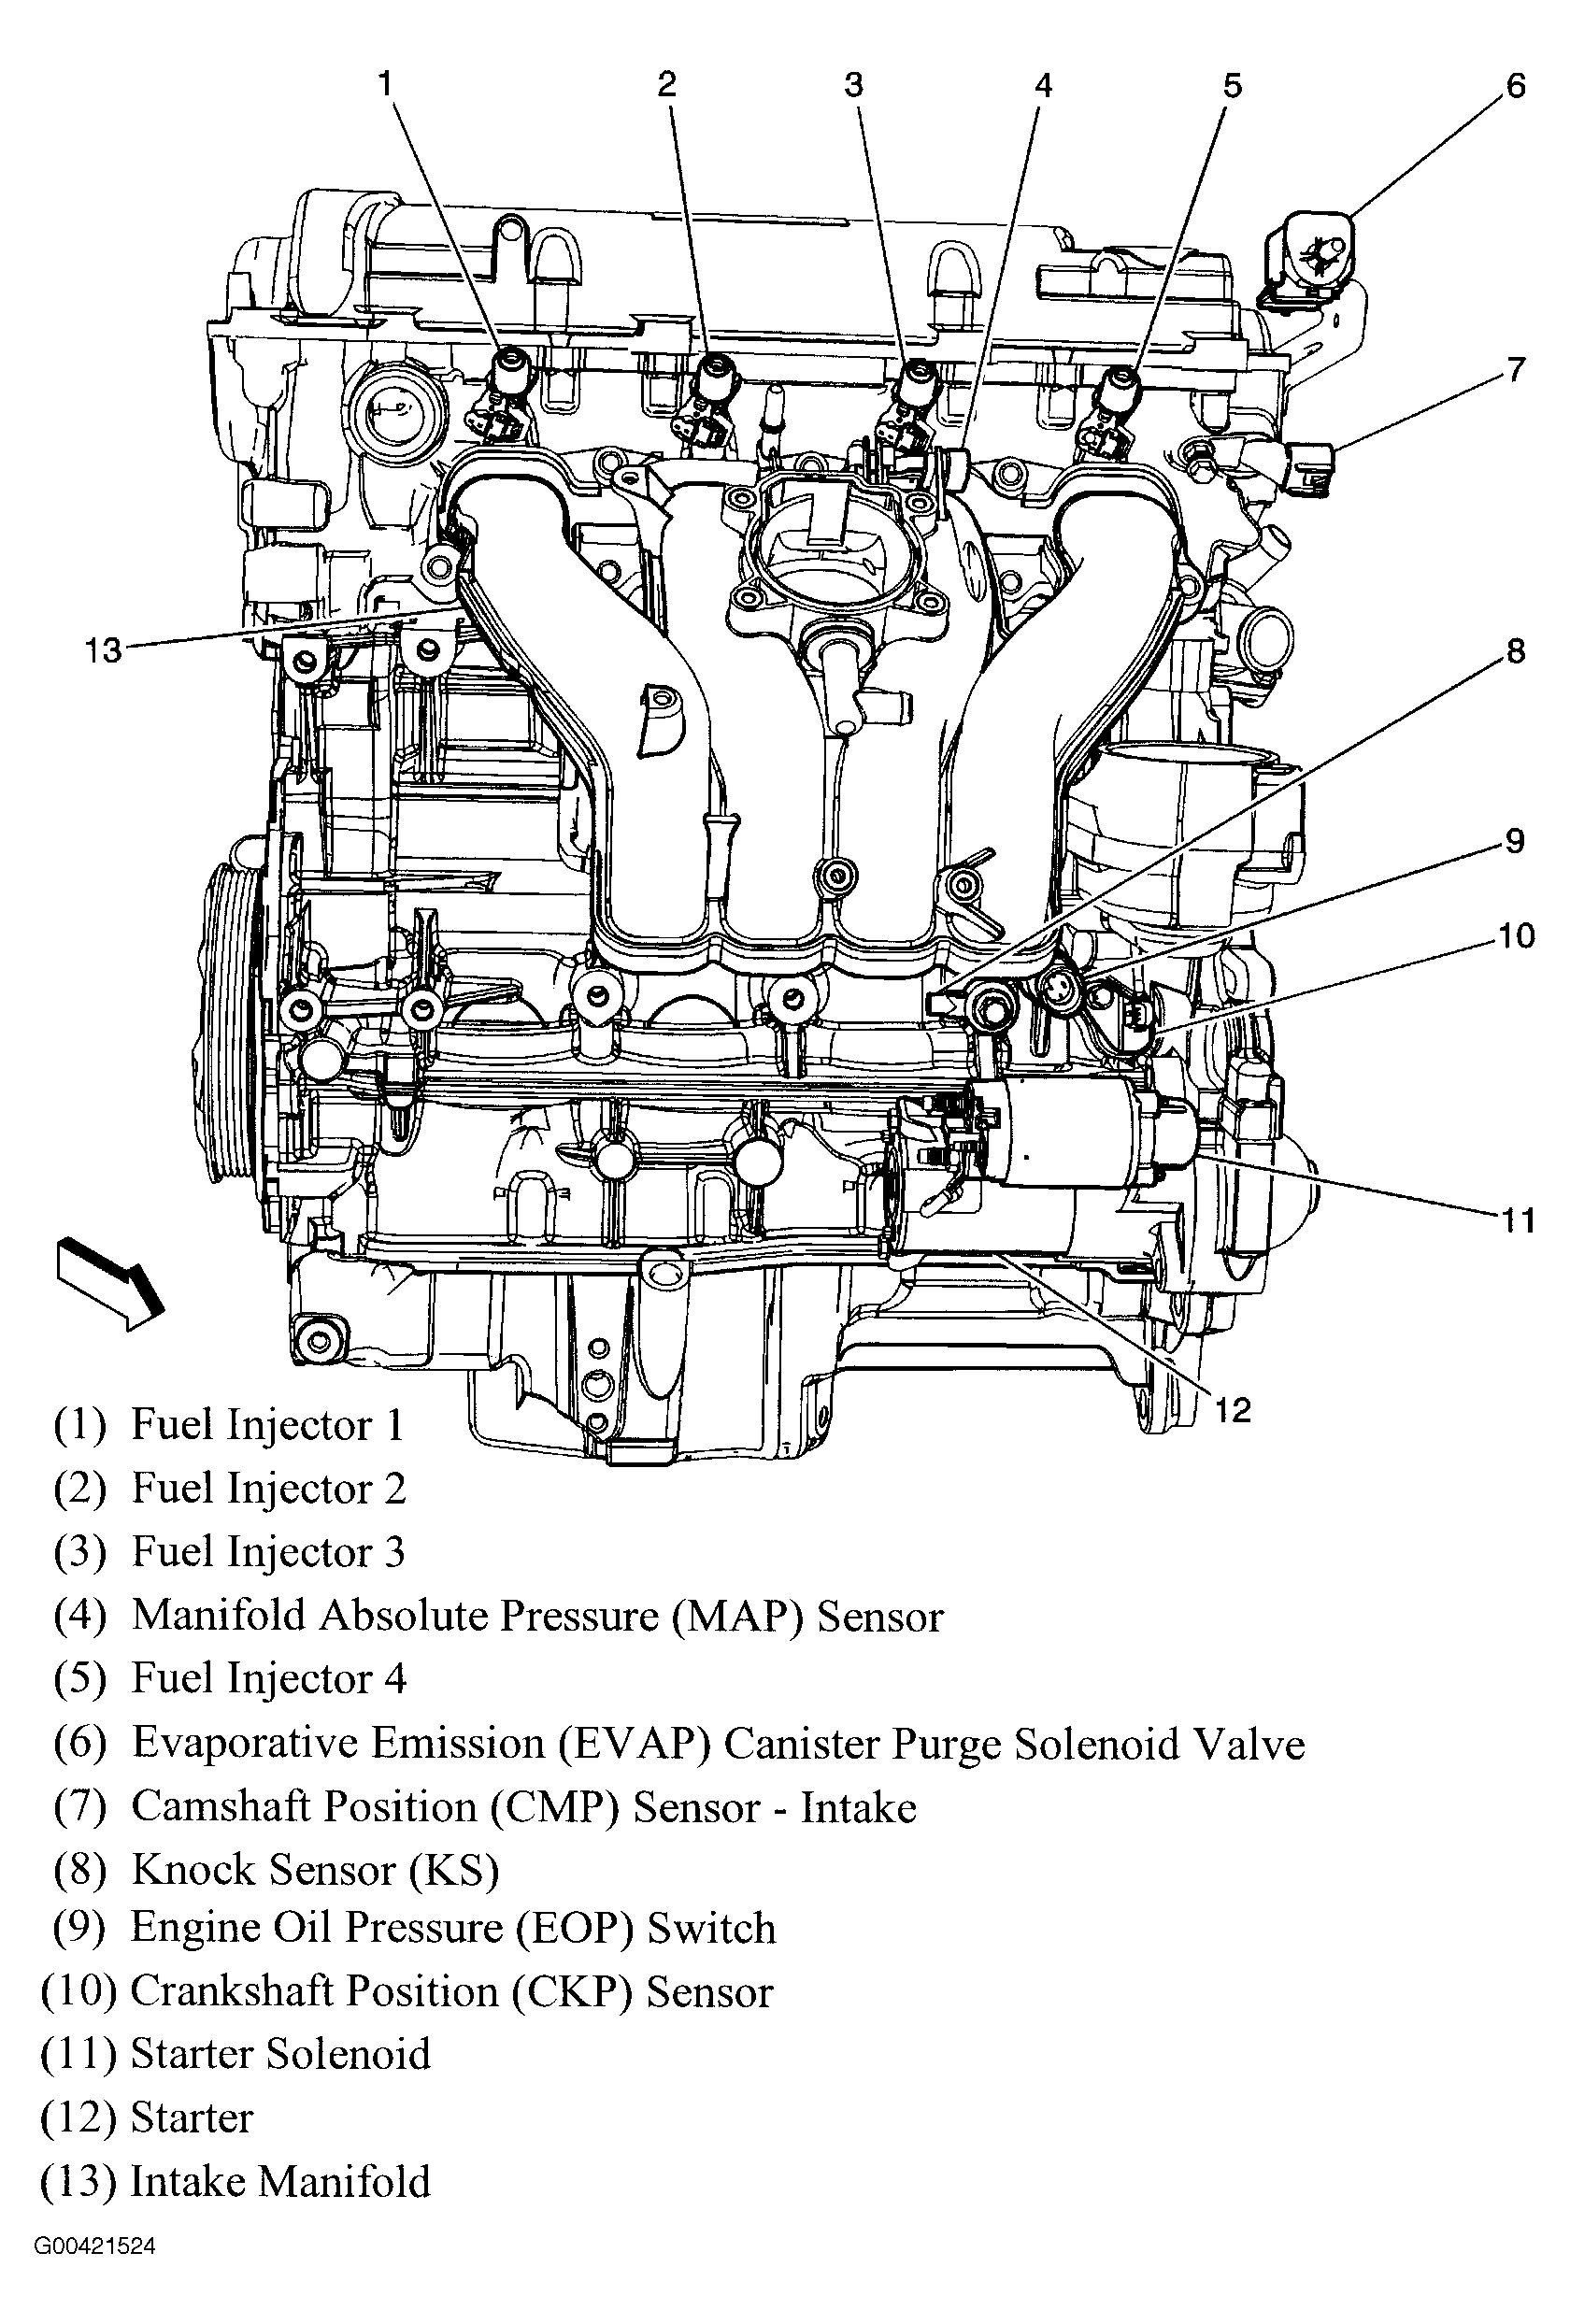 2004 Chevy Trailblazer Engine Diagram | Chevy cruze, Line diagram, Chevy | 2004 Chevrolet Trailblazer Engine Diagram |  | Pinterest